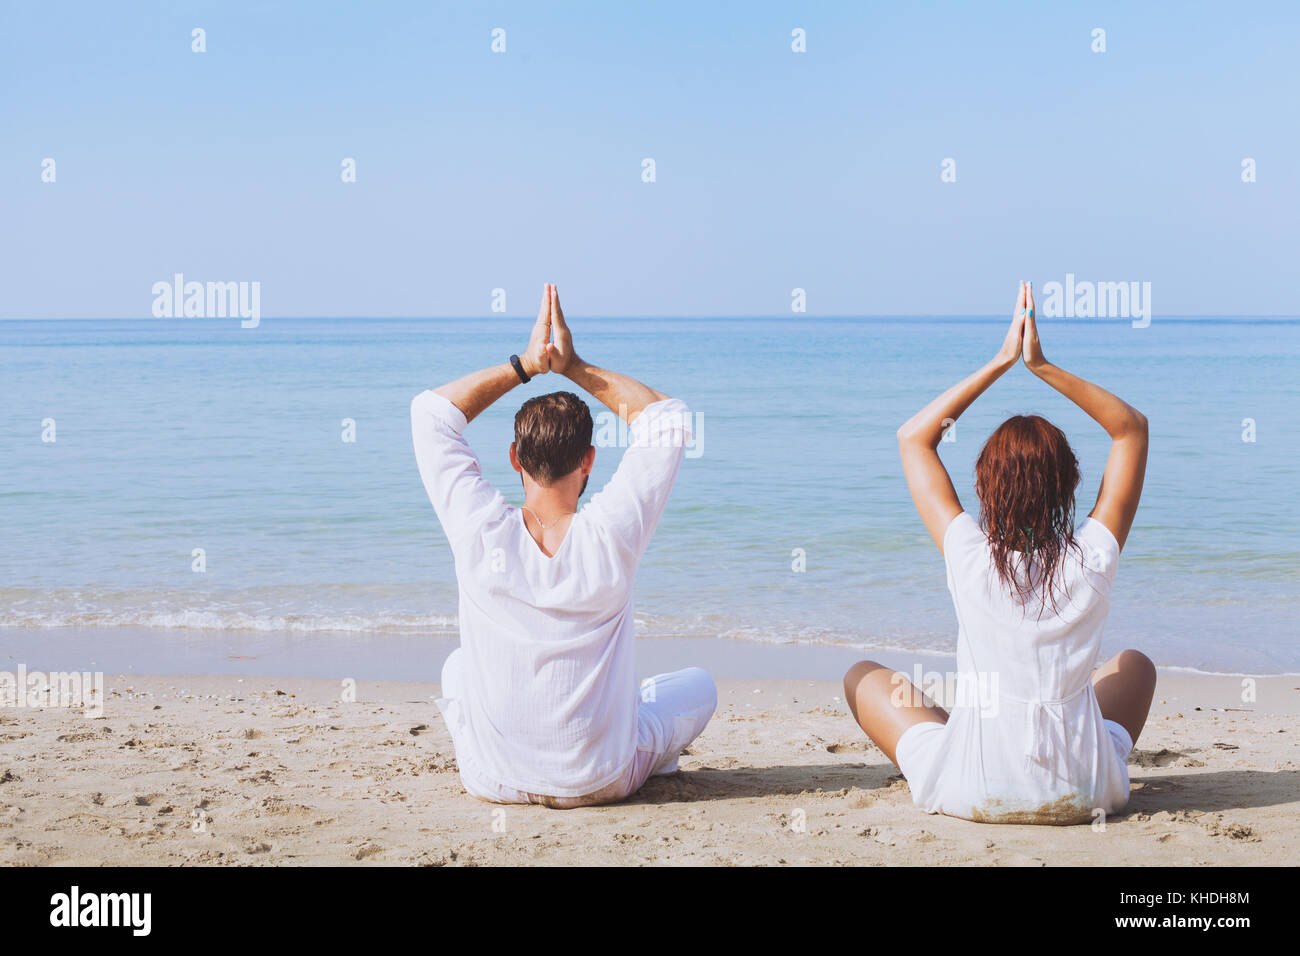 yoga on the beach, two people in white clothes practicing meditation, healthy lifestyle background - Stock Image